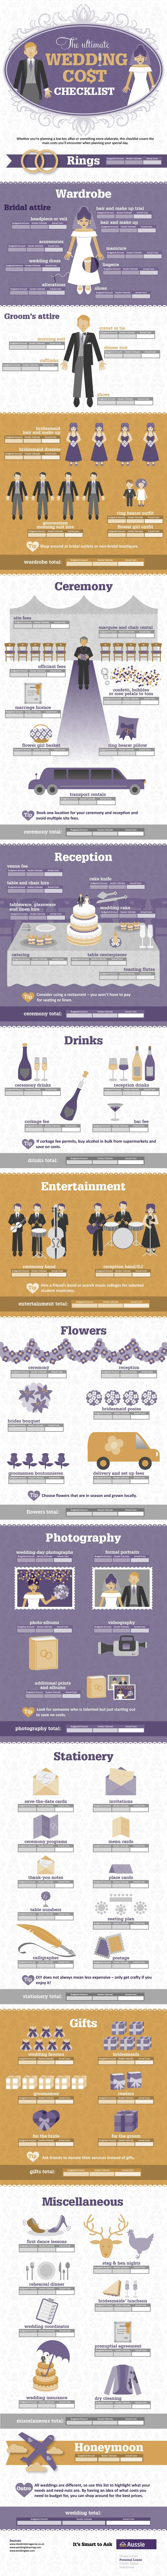 Infographic: Planning Your Wedding? The Ultimate Wedding Planning ...